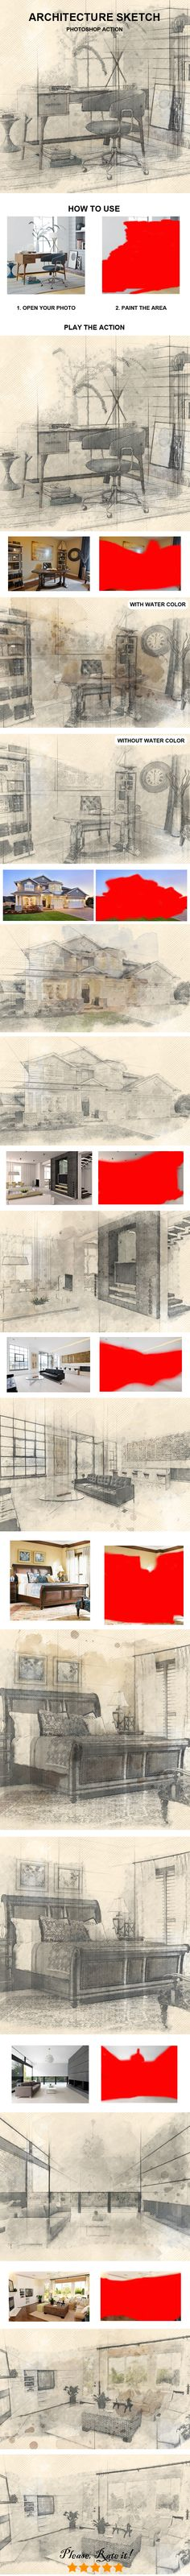 Architecture Sketch Photoshop Action - Photo Effects Actions